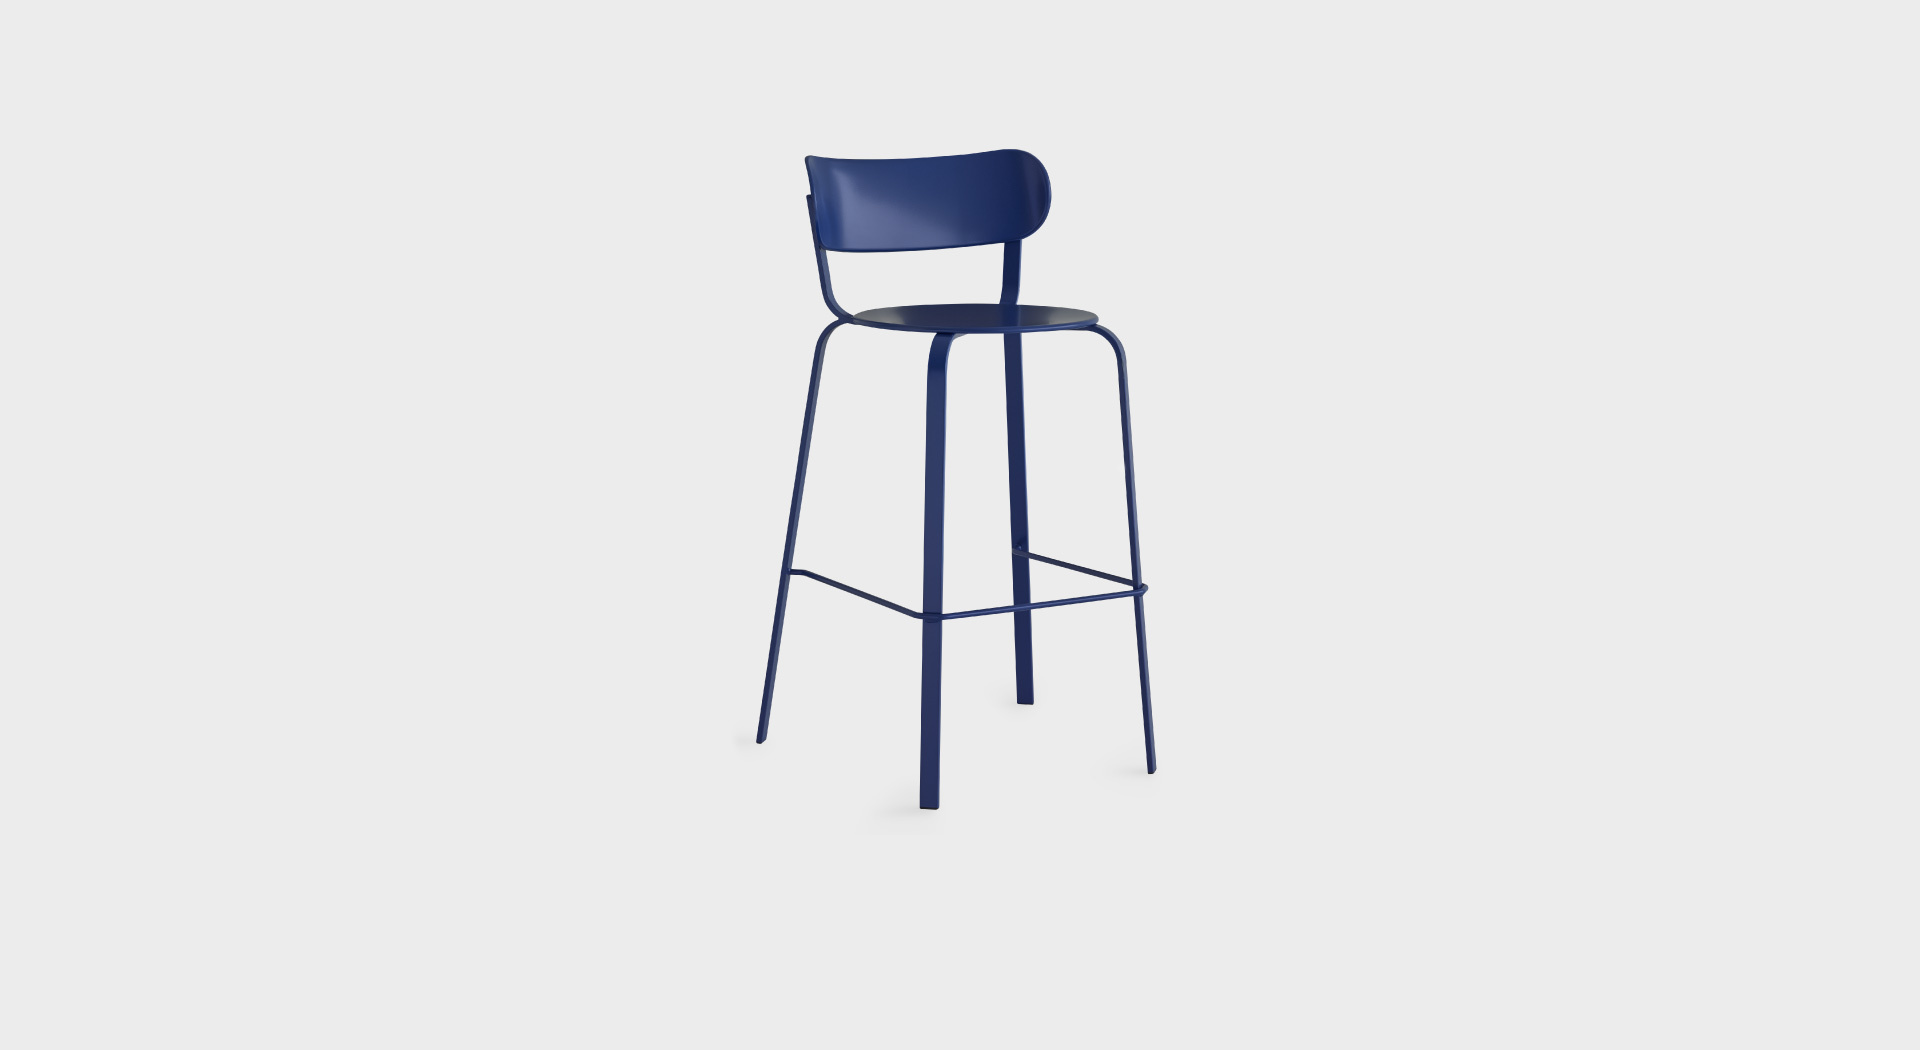 STIL S49   Powder coated metal stool: For the home or